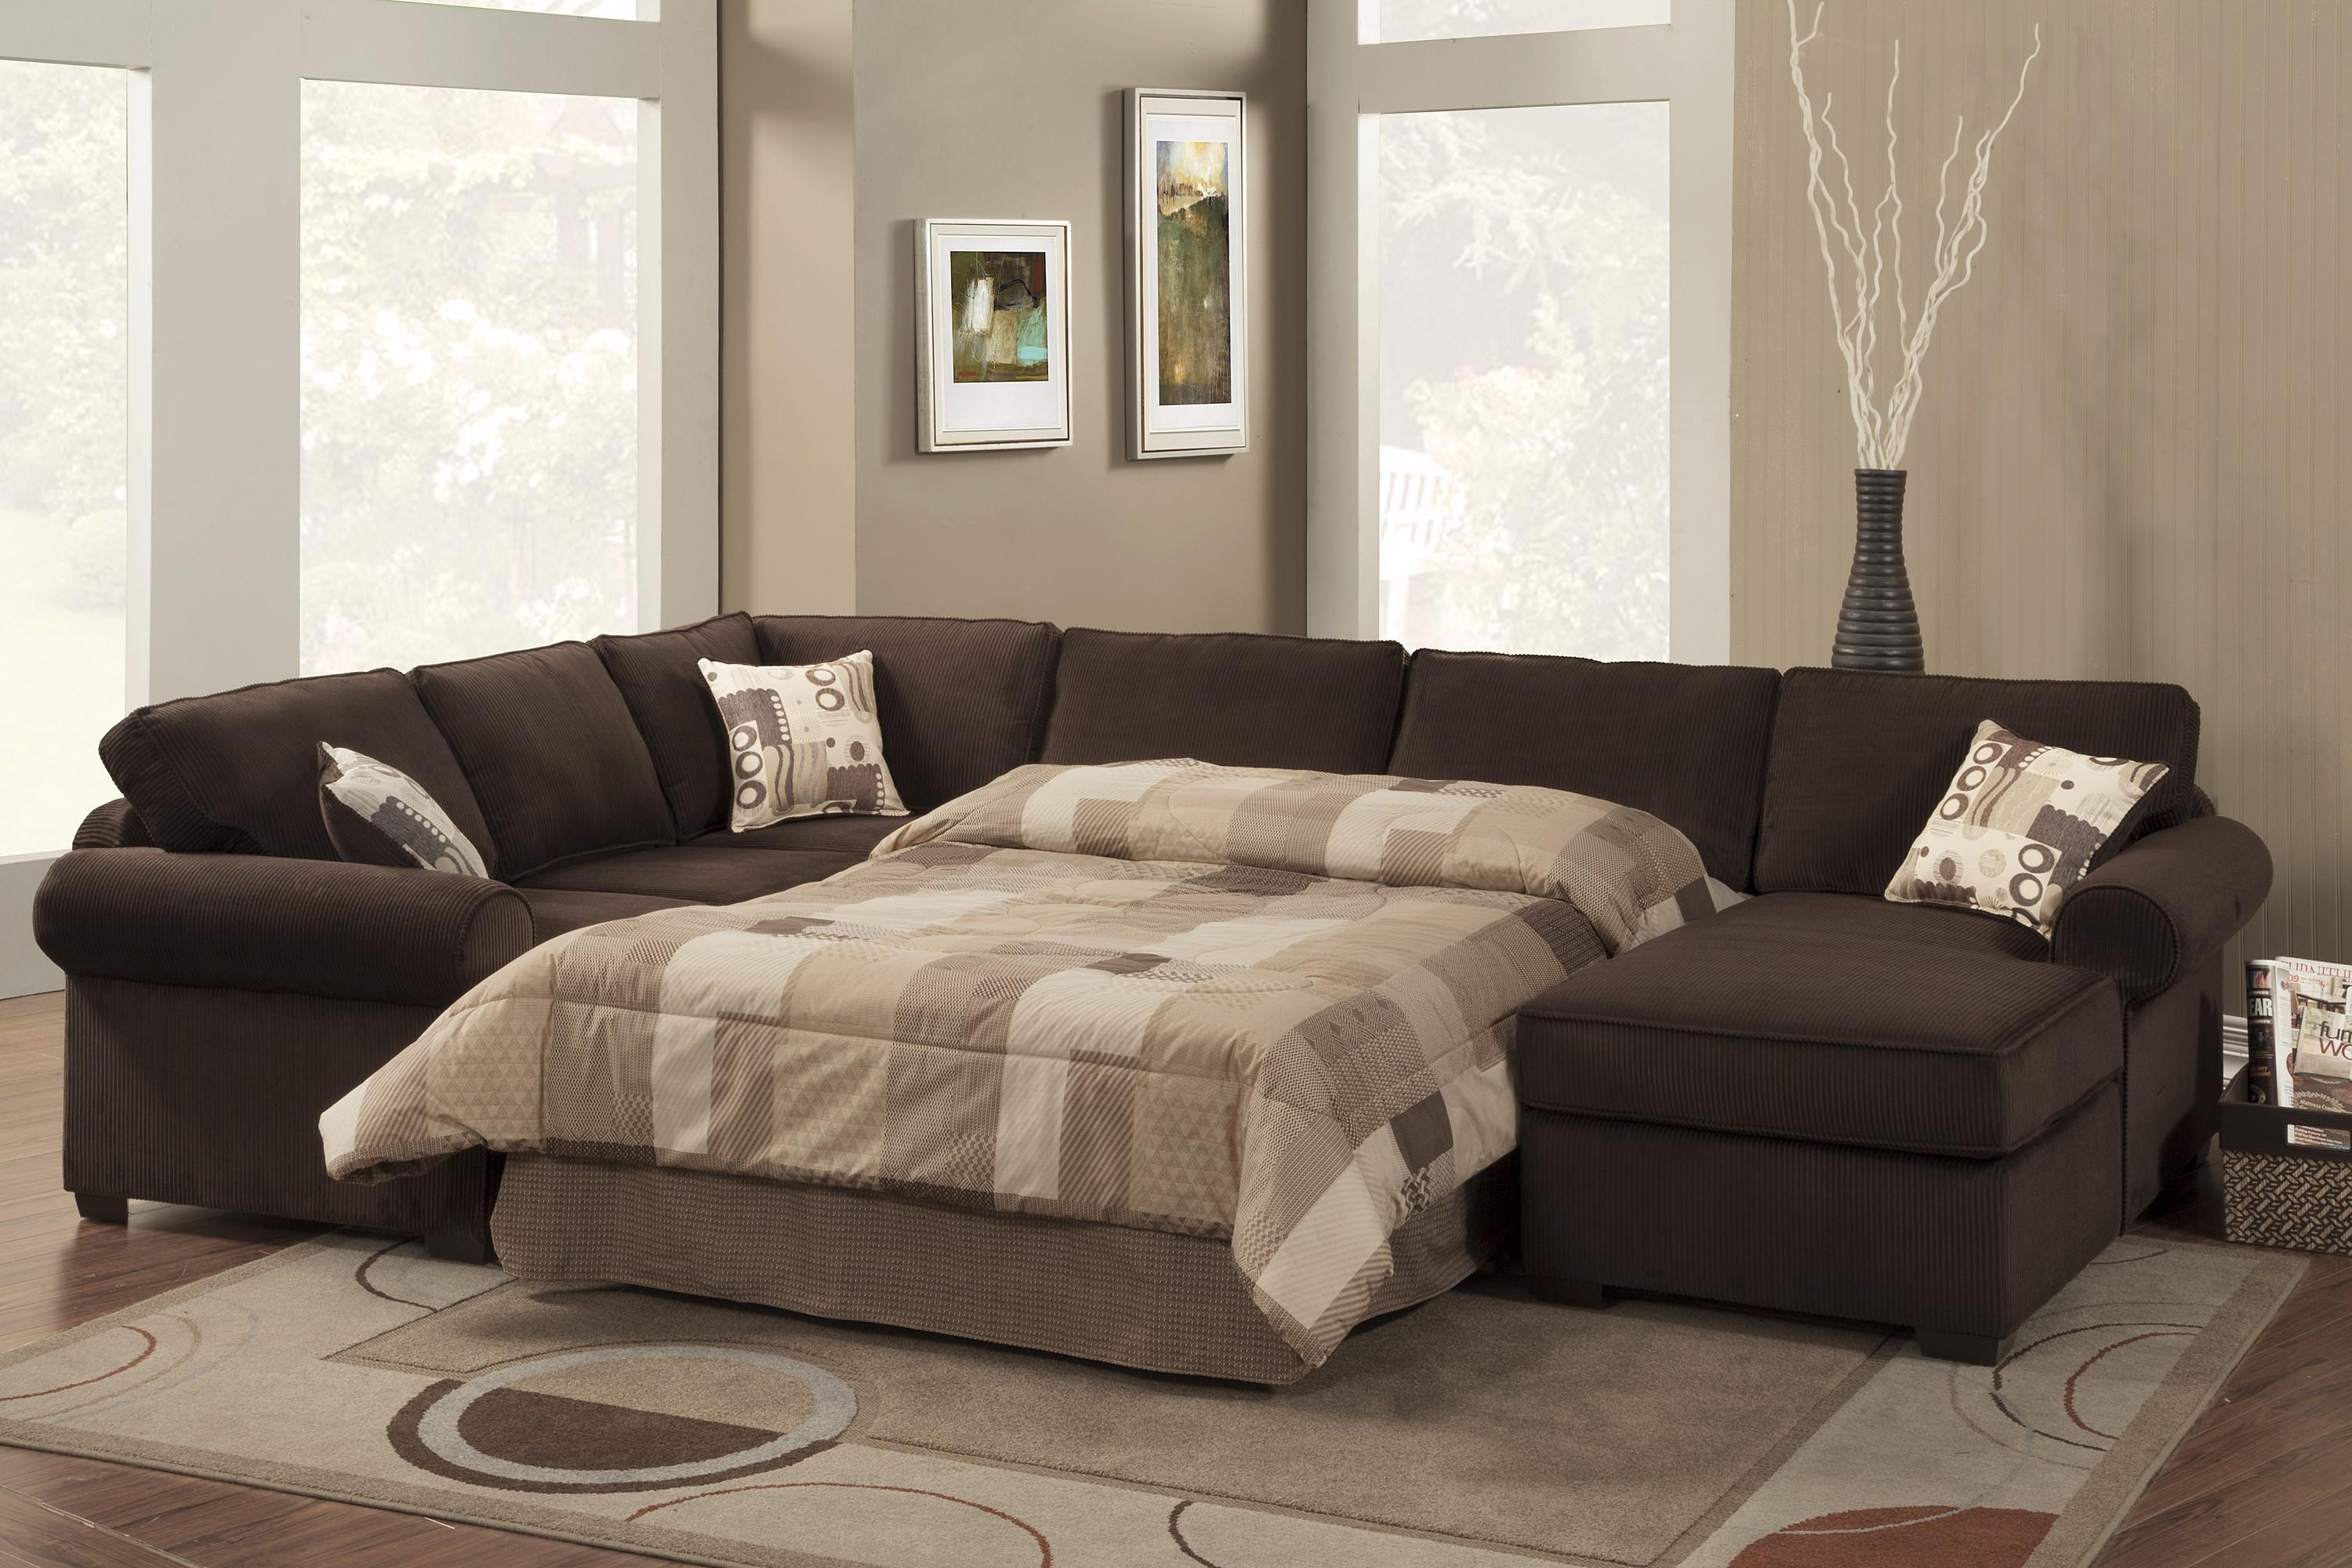 Furniture: Wondrous Alluring Sectional With Sleeper For Home Inside Microsuede Sleeper Sofas (Image 10 of 20)